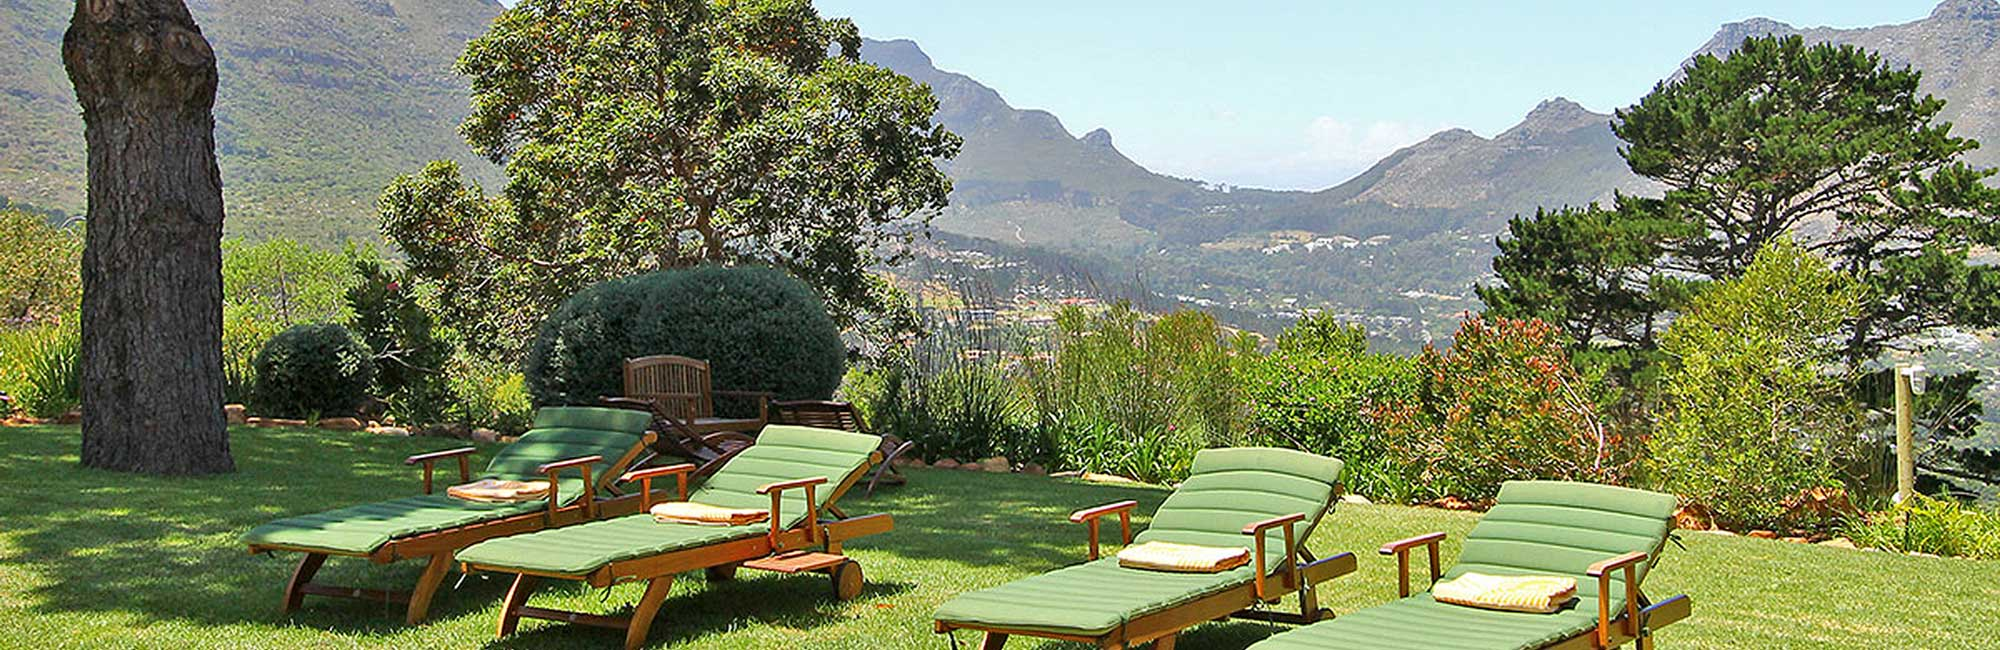 Villa Montebello luxury guest house in Hout bay